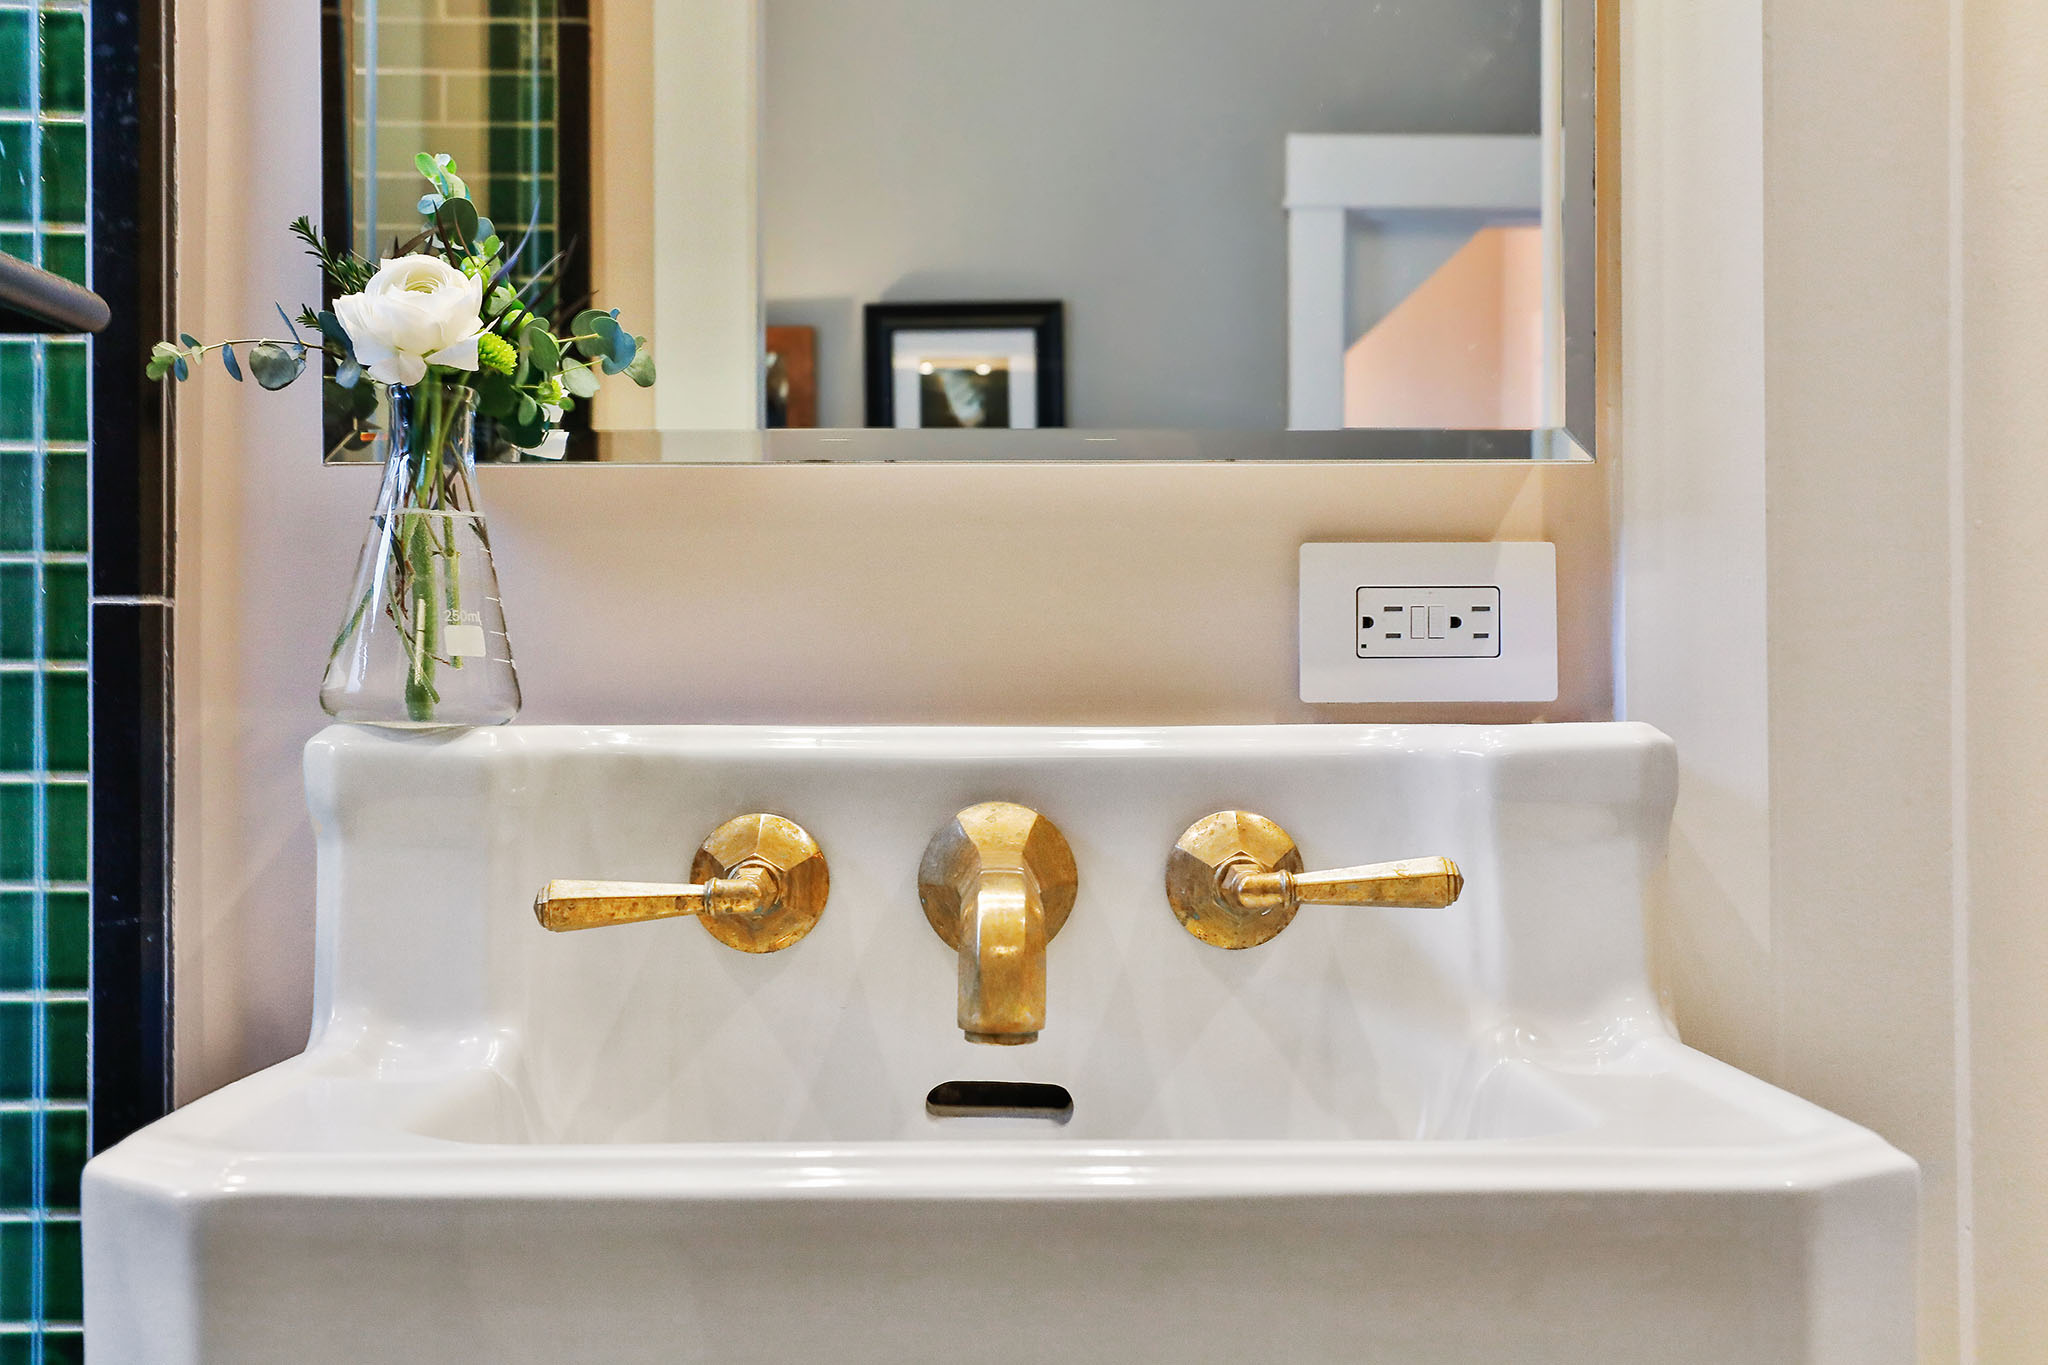 SF Real Estate - Bathroom sink with gold fixtures